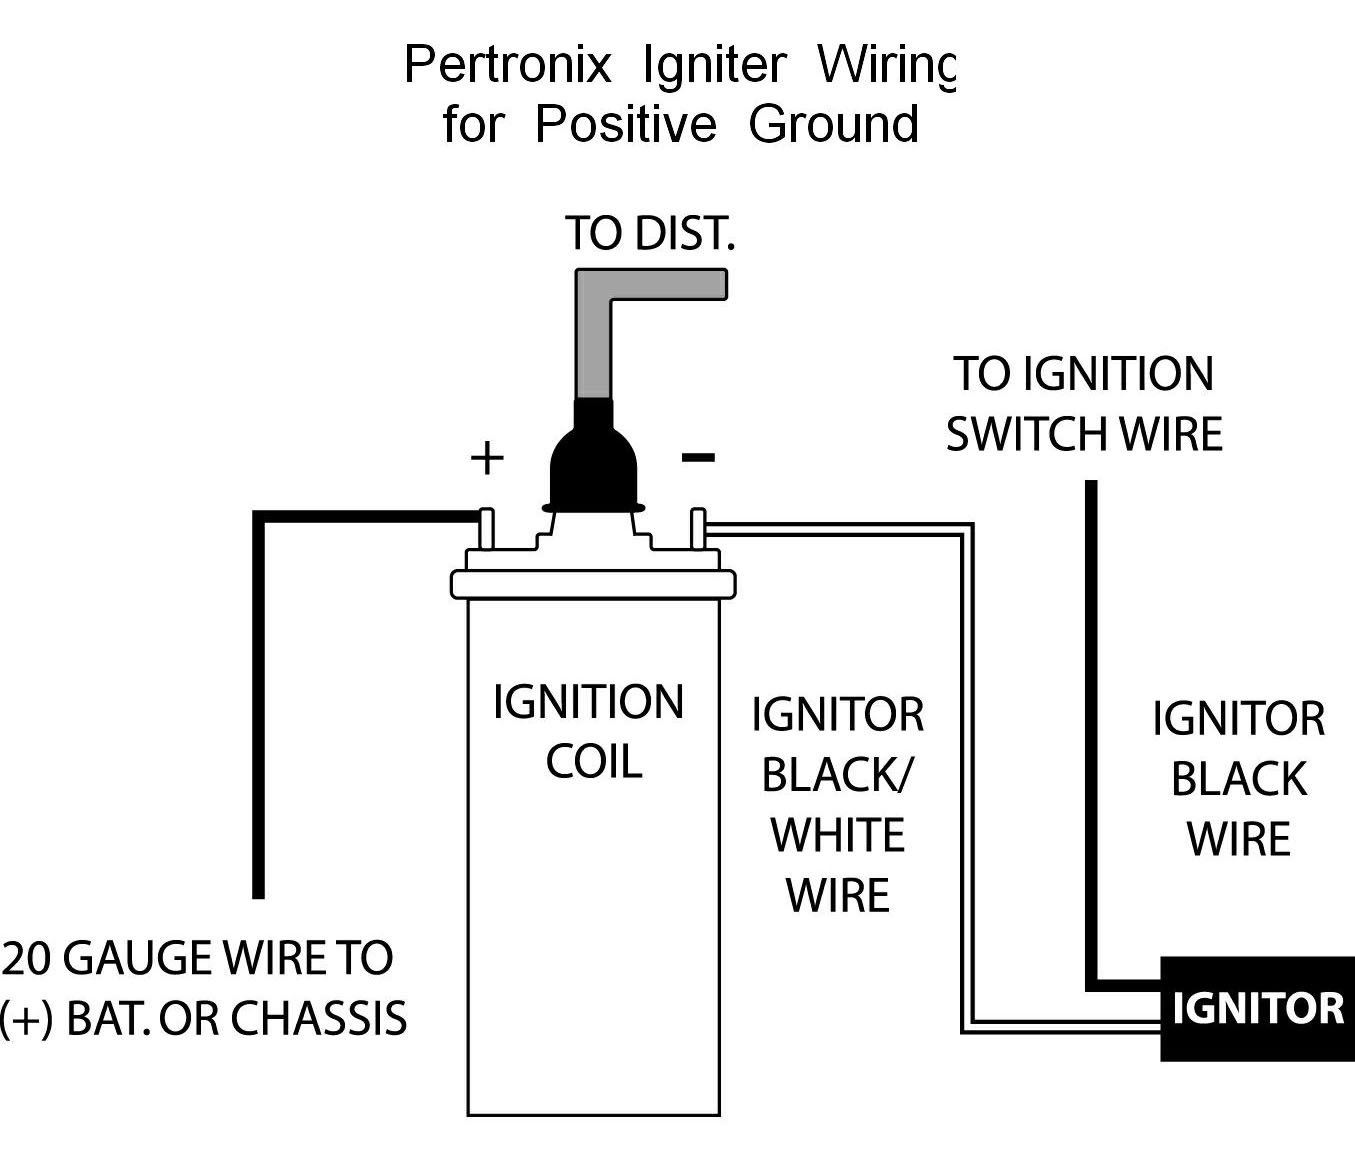 Td Cortina Wiring Diagram Simple Guide About Pertronix Positive Ground